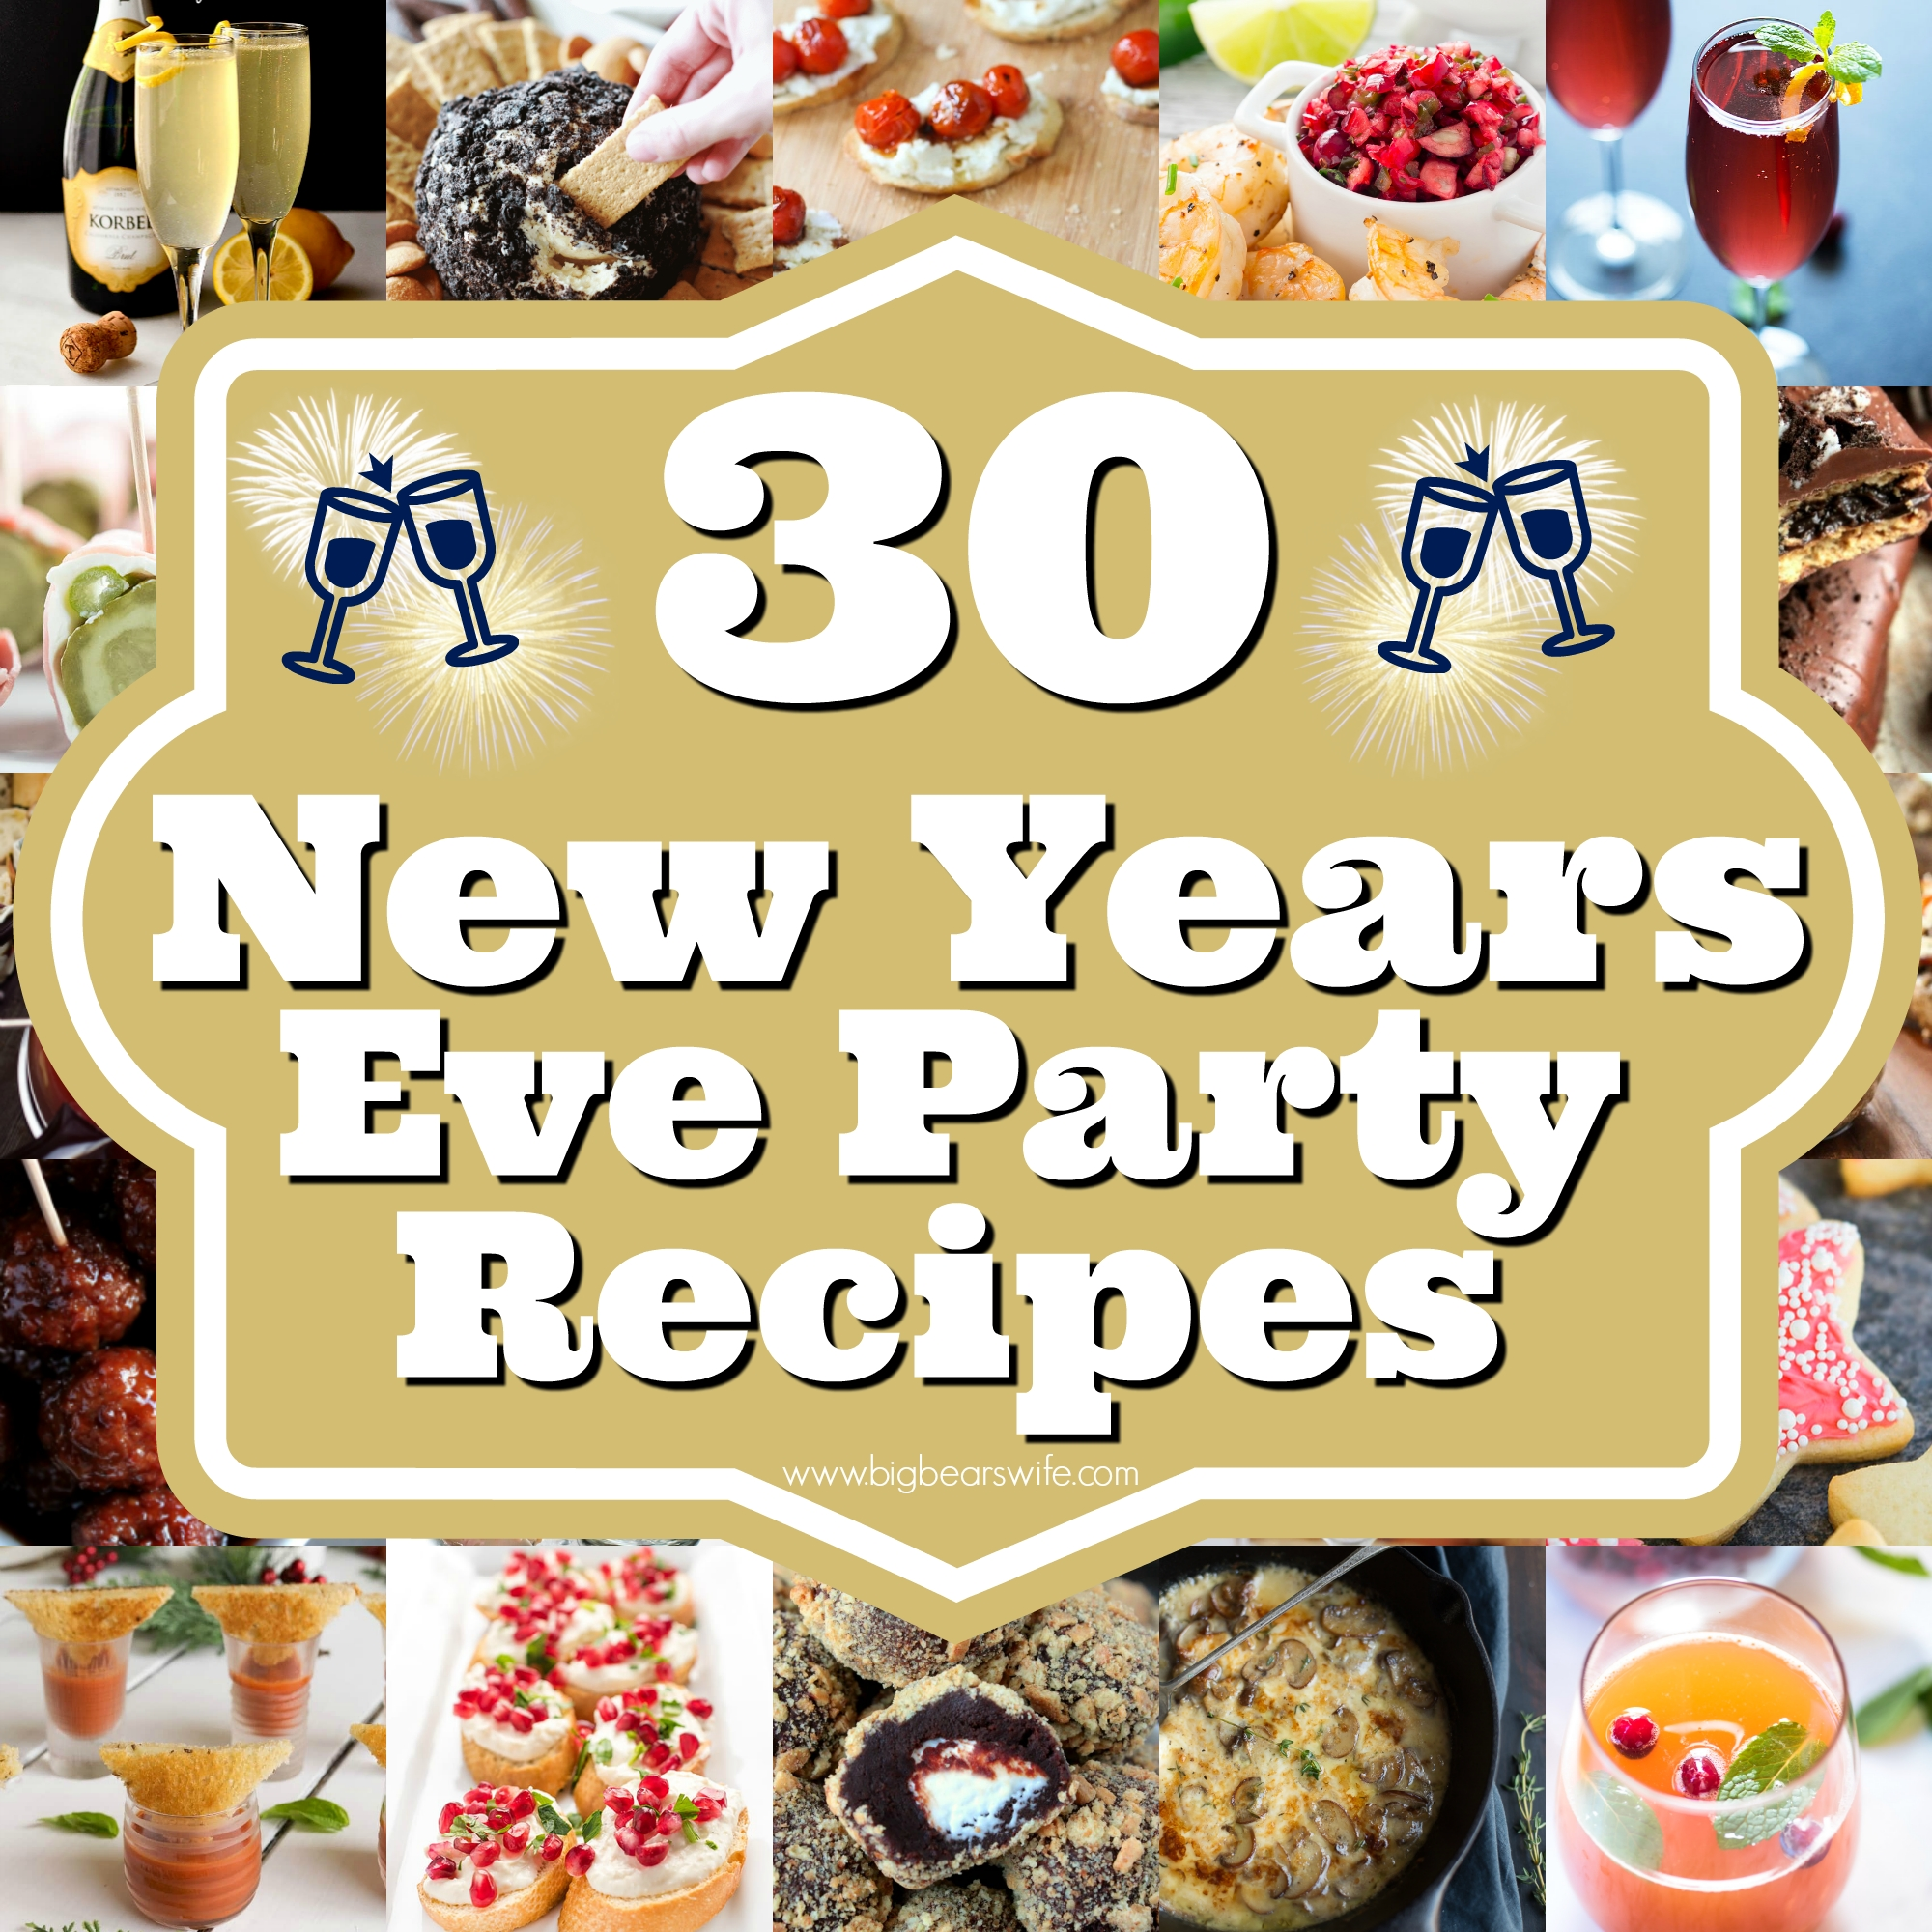 10 Beautiful New Years Eve Menu Ideas 30 new years eve party recipes savory ideas sweets and cocktails 4 2020